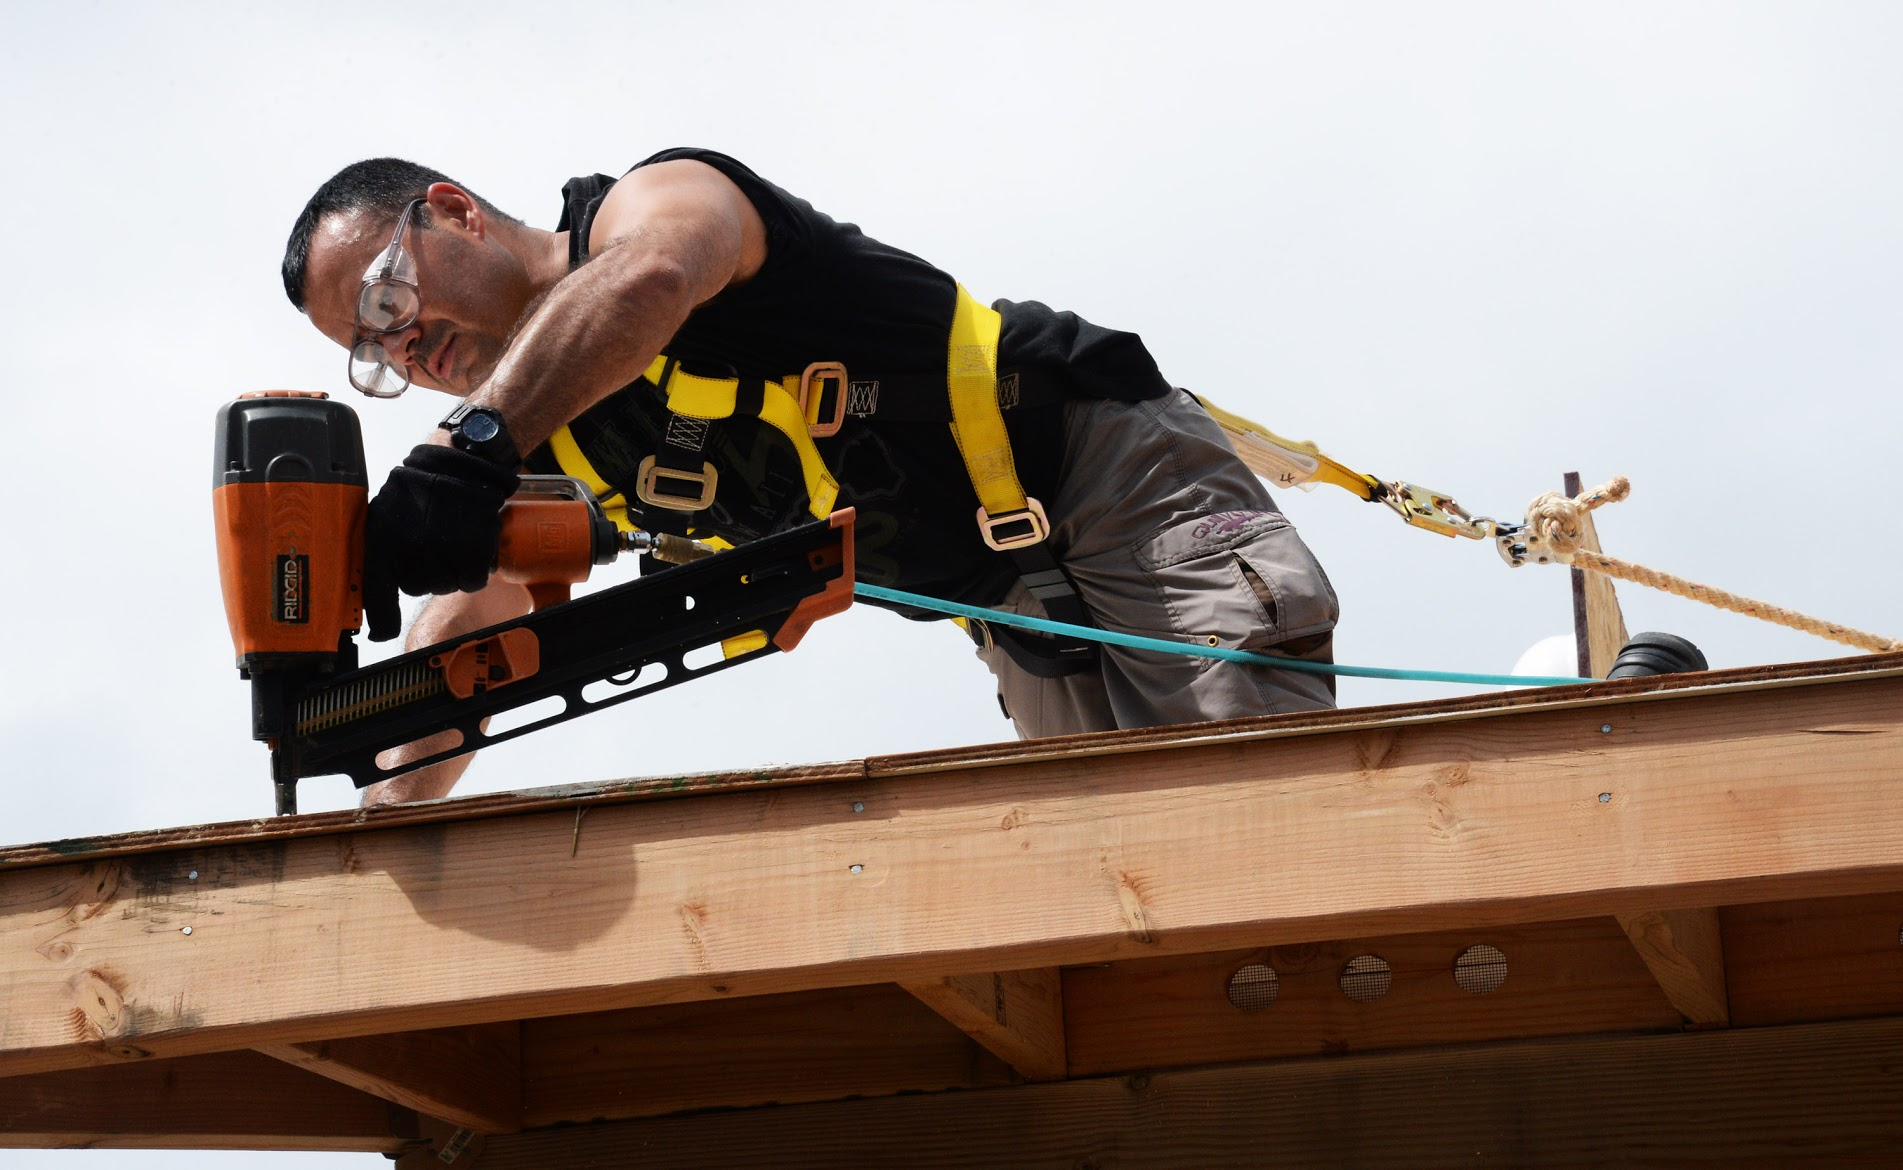 person remodeling a house roof